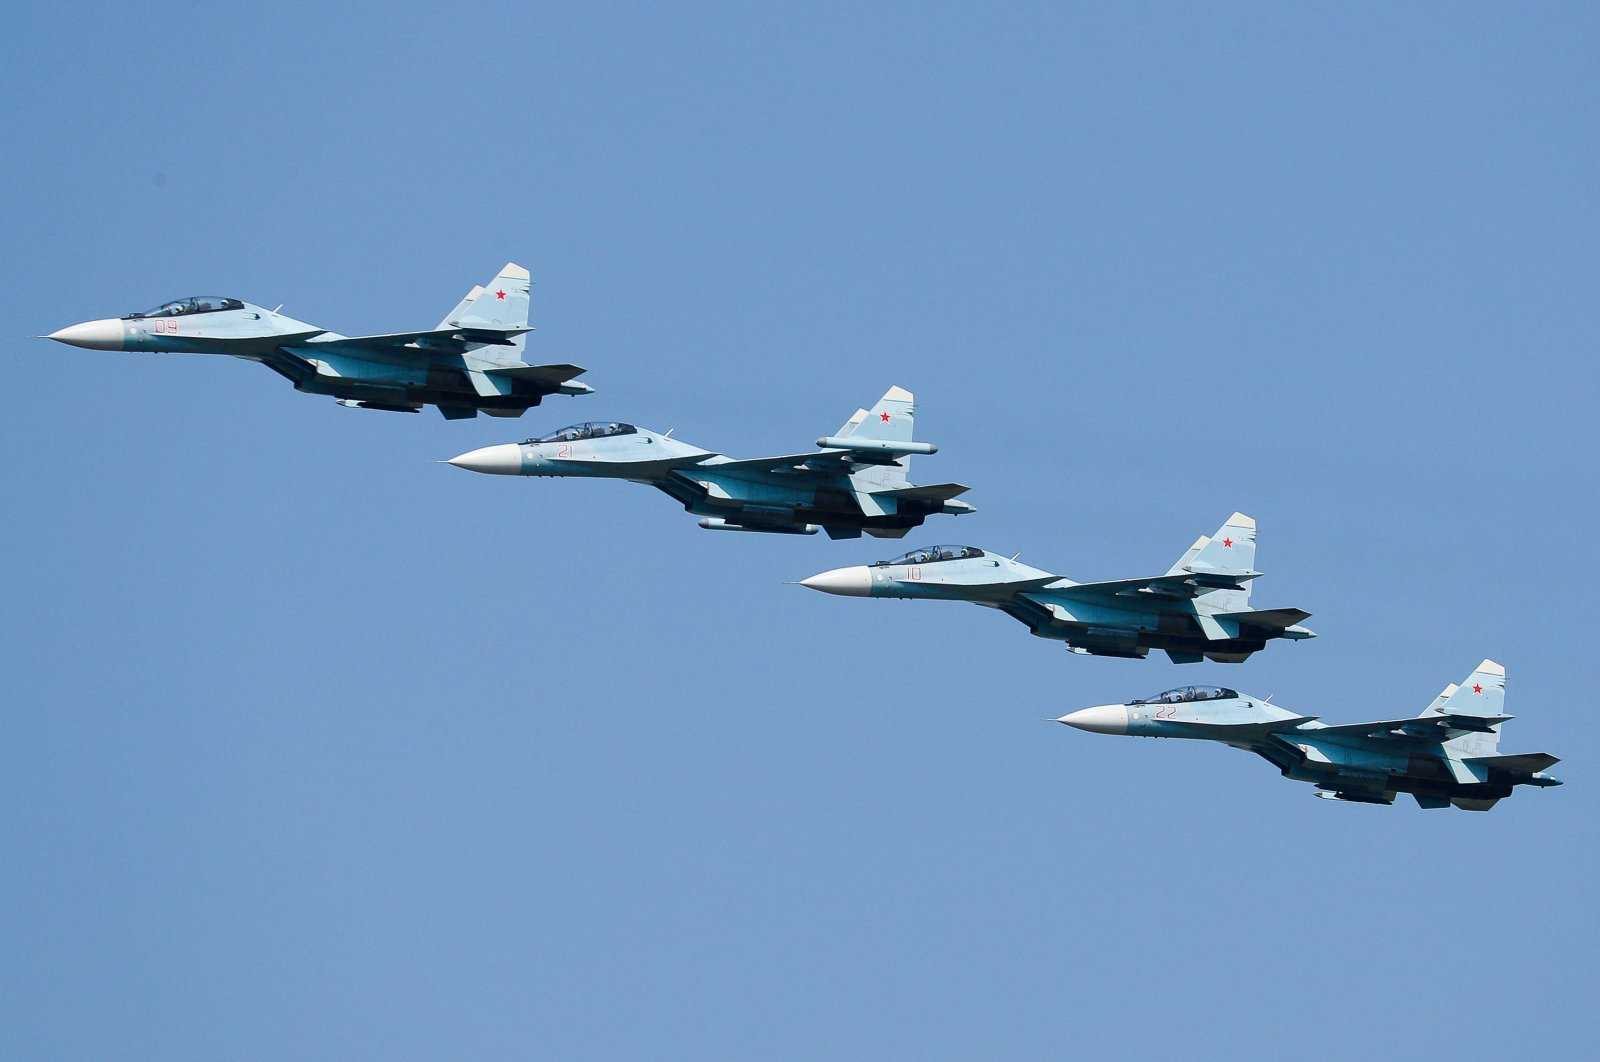 Russia's Sukhoi Su-30SM fighter jets take part in an air show as part of the Army 2021 International Military and Technical Forum in Rostov-on-Don region, southern Russia, Aug. 29, 2021. (Reuters Photo)